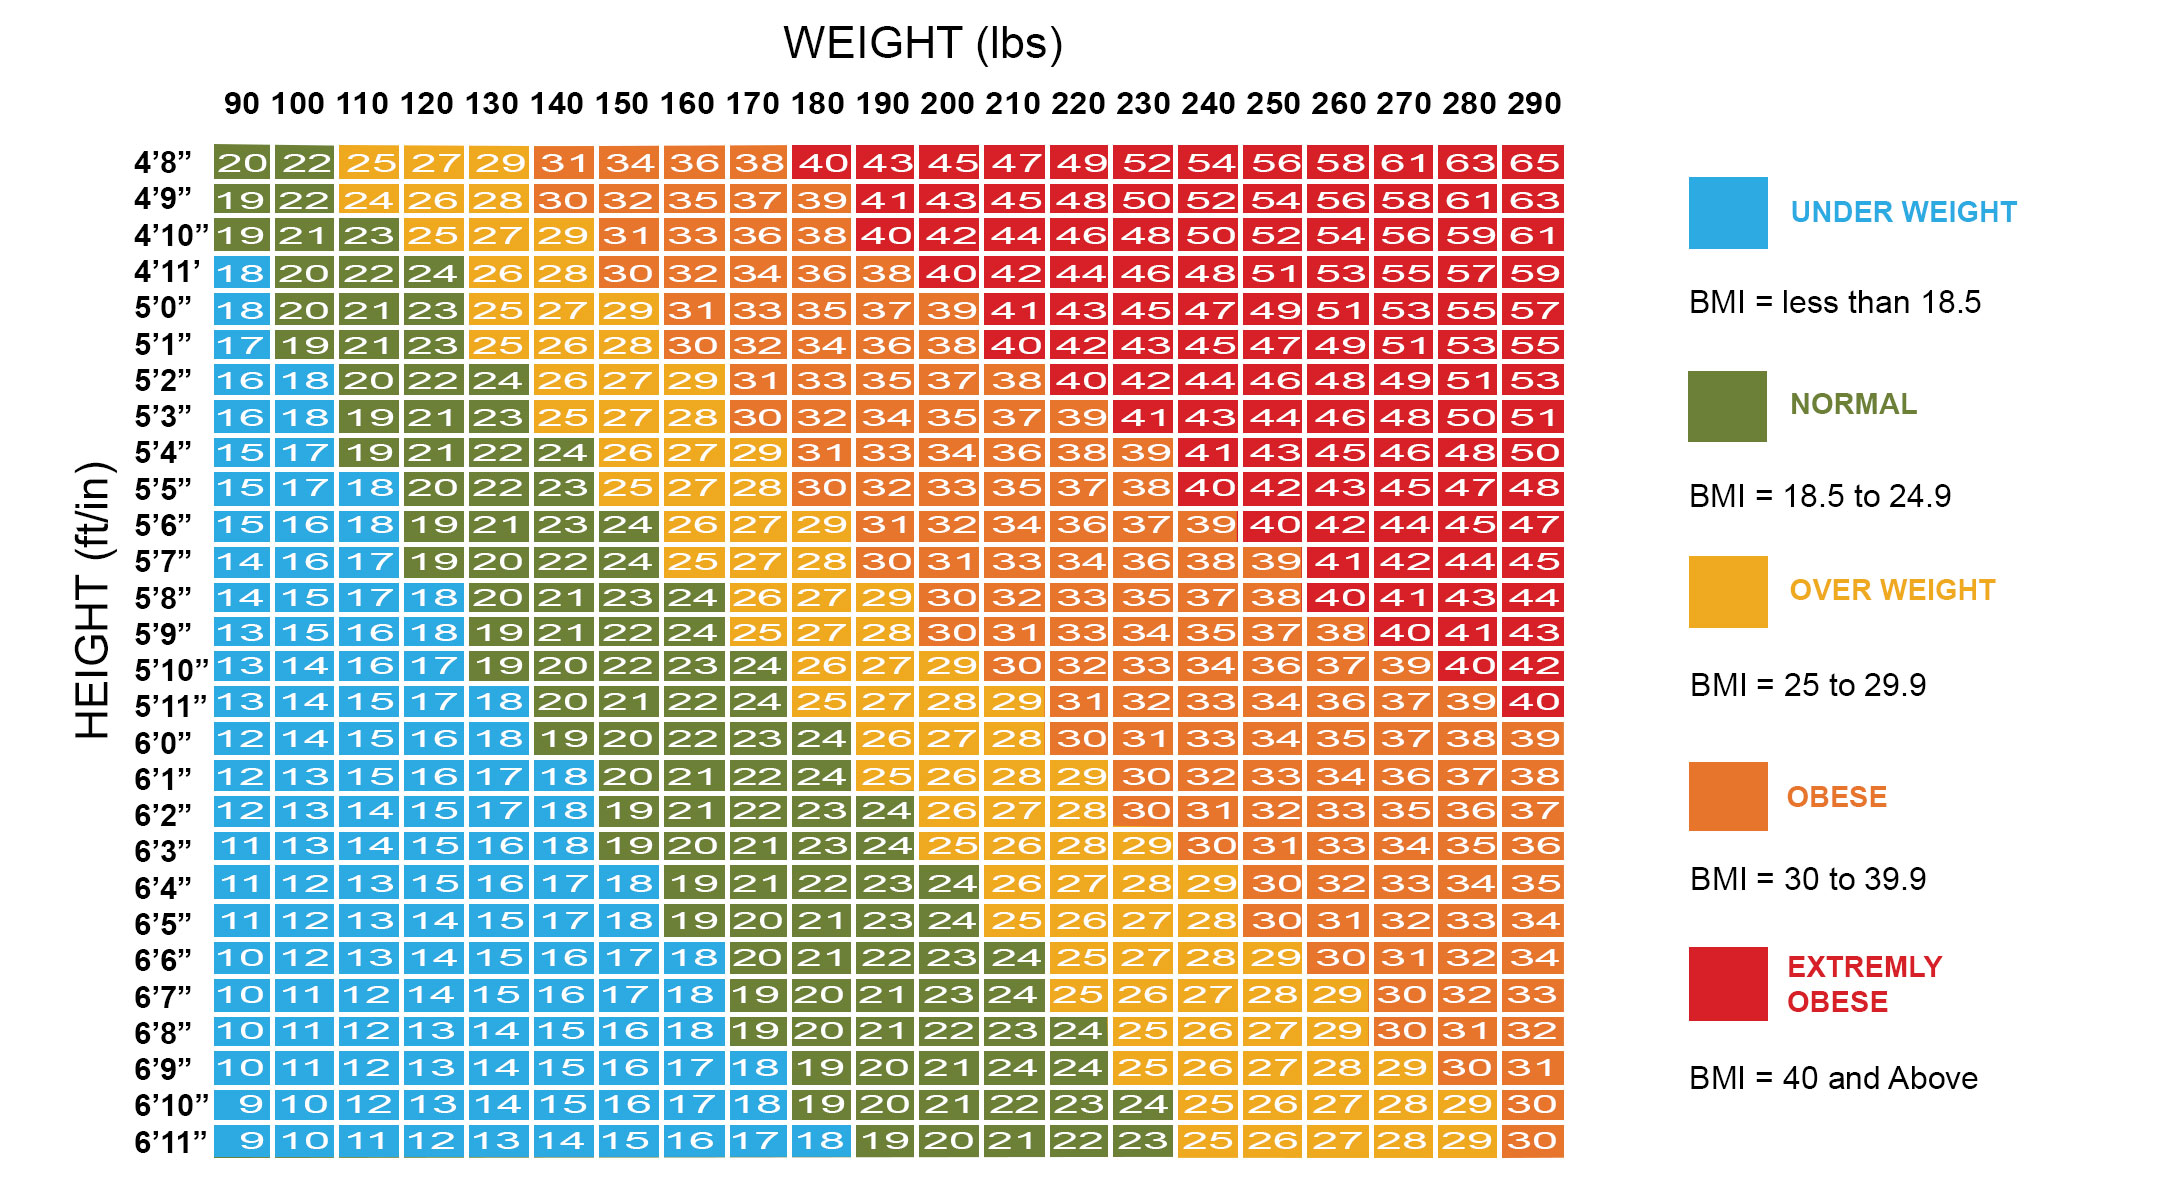 BMI Body Mass Index Calculator   Calculate Your Ideal Healthy Weight